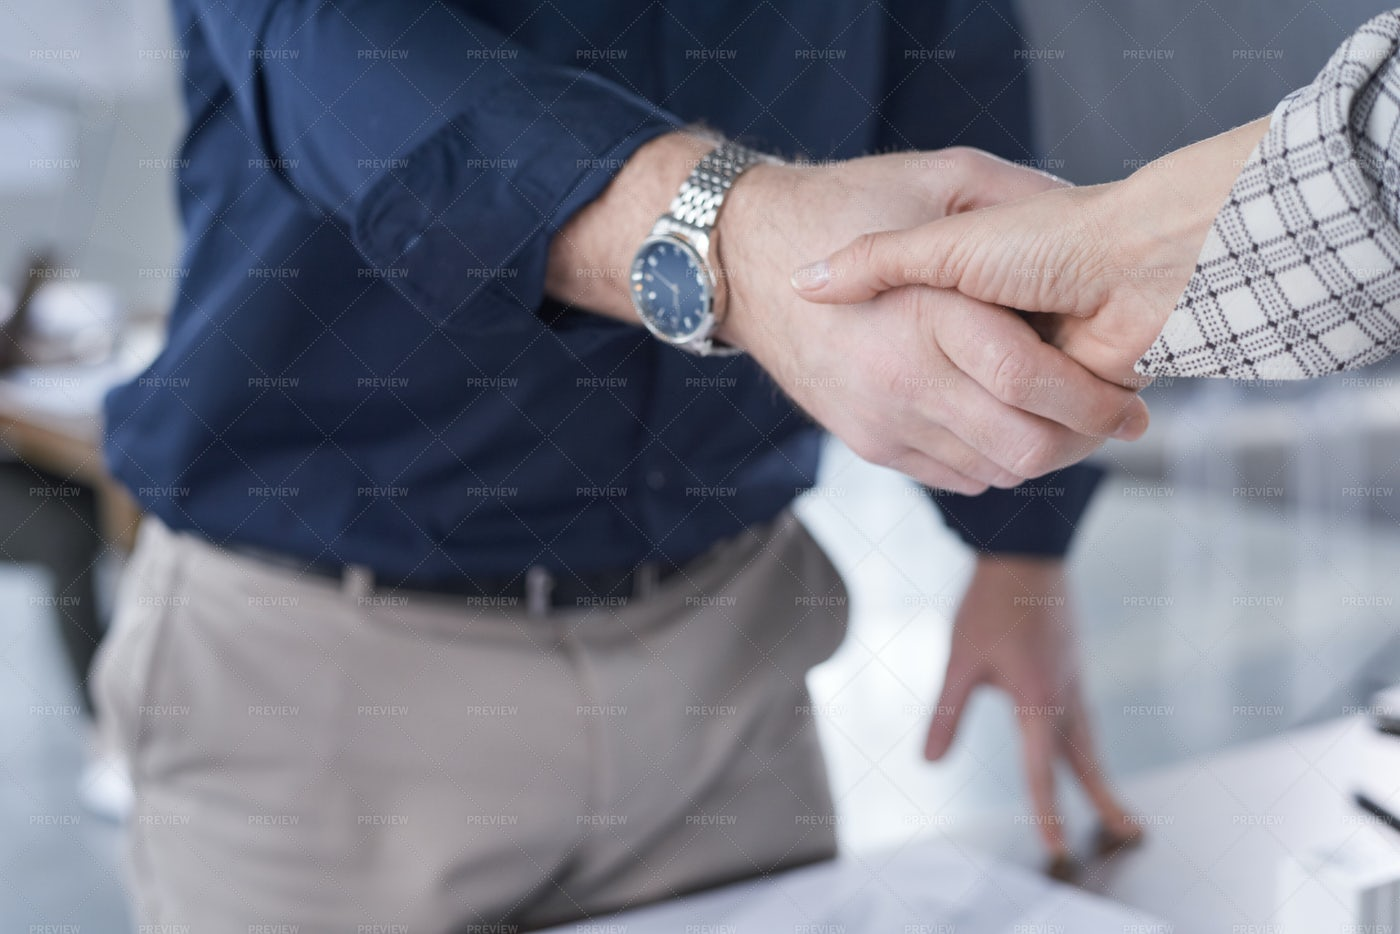 Business People Greeting Each Other: Stock Photos